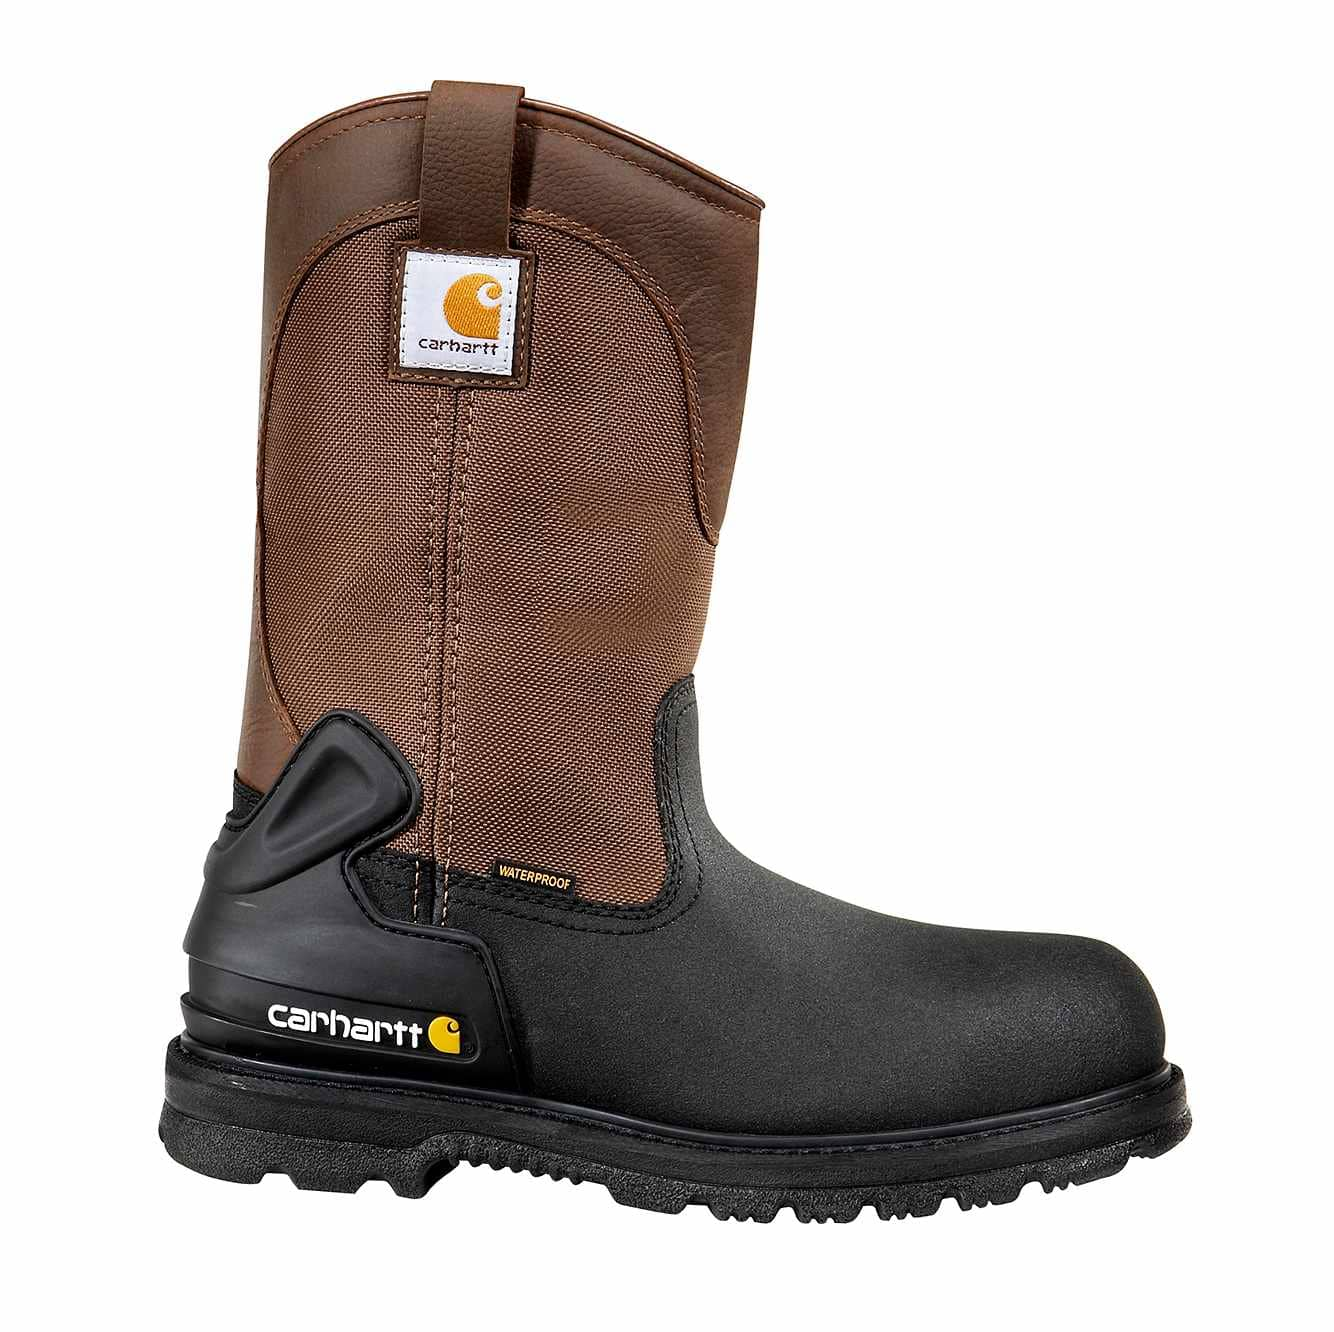 Picture of 11-Inch Insulated Steel Toe Wellington Boot in Brown and Black Leather